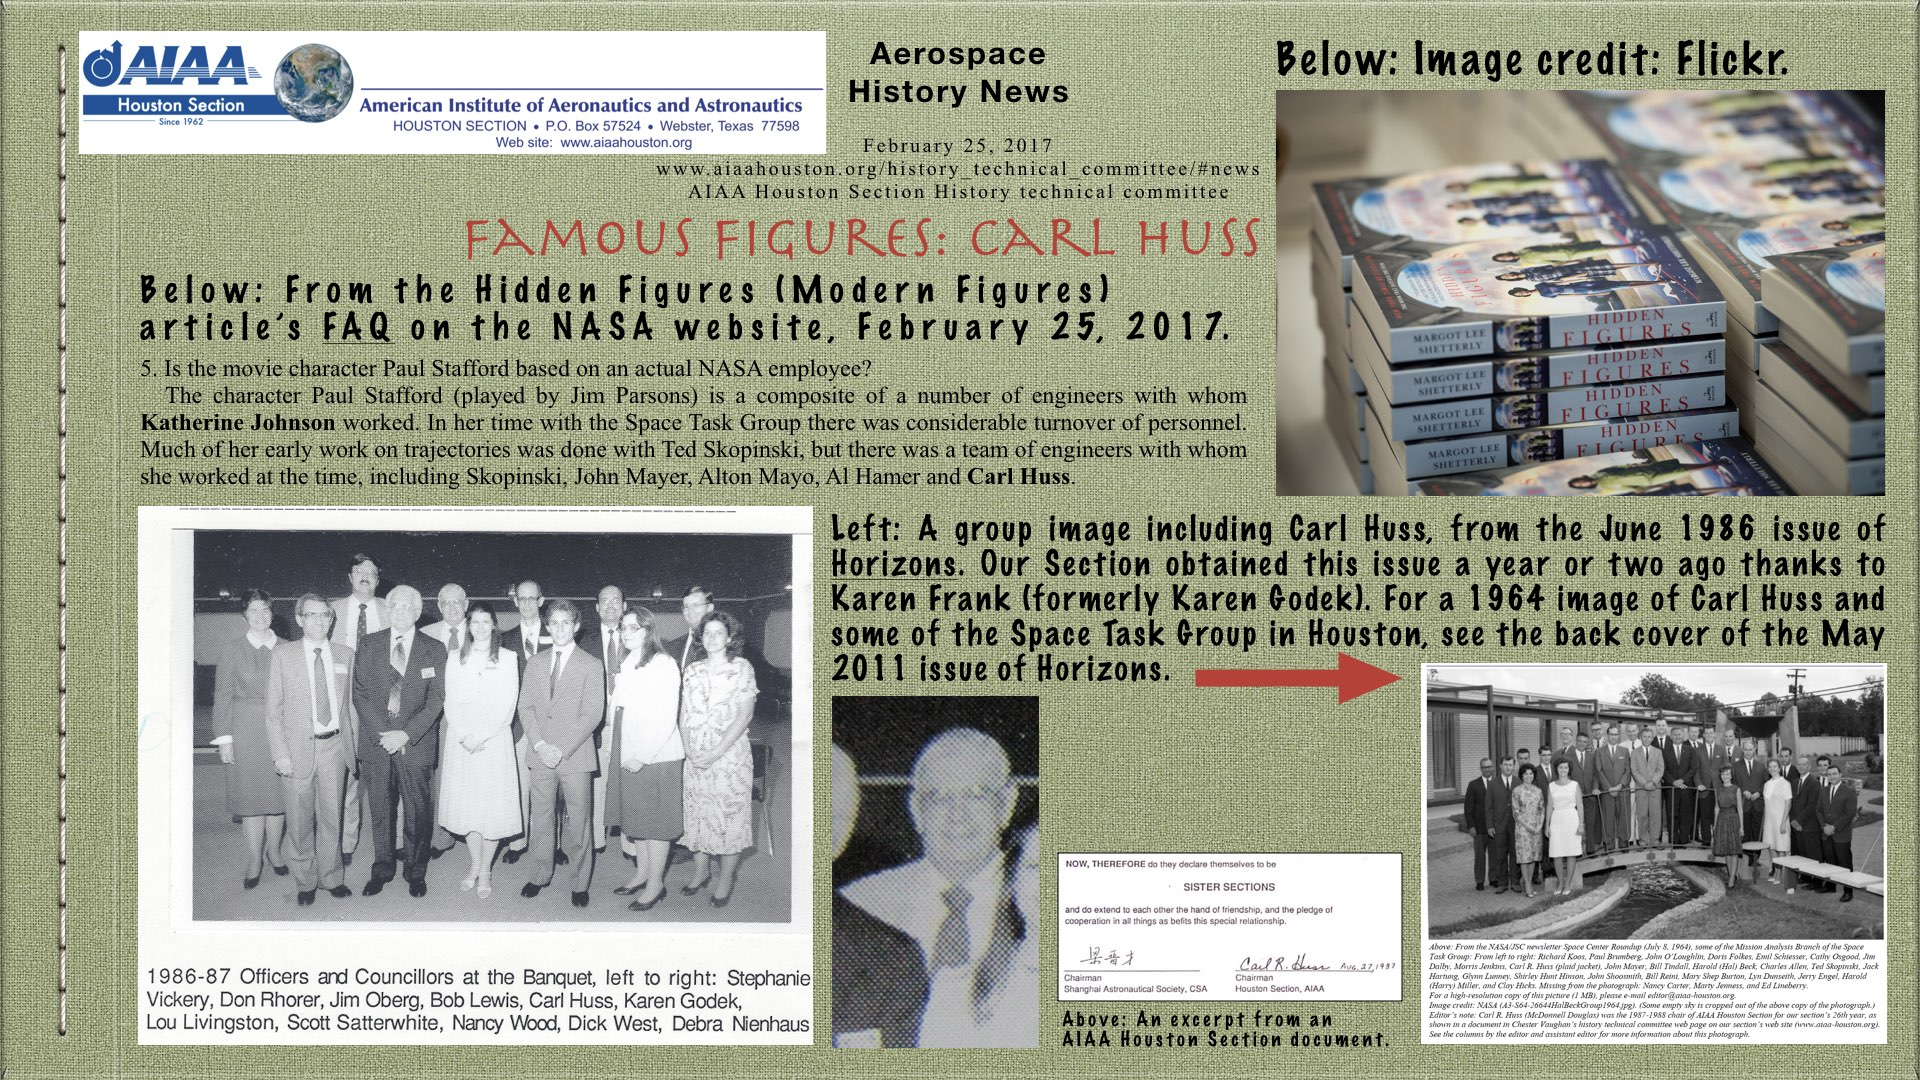 Above: Famous Figures: Carl Huss. (Click to zoom.)